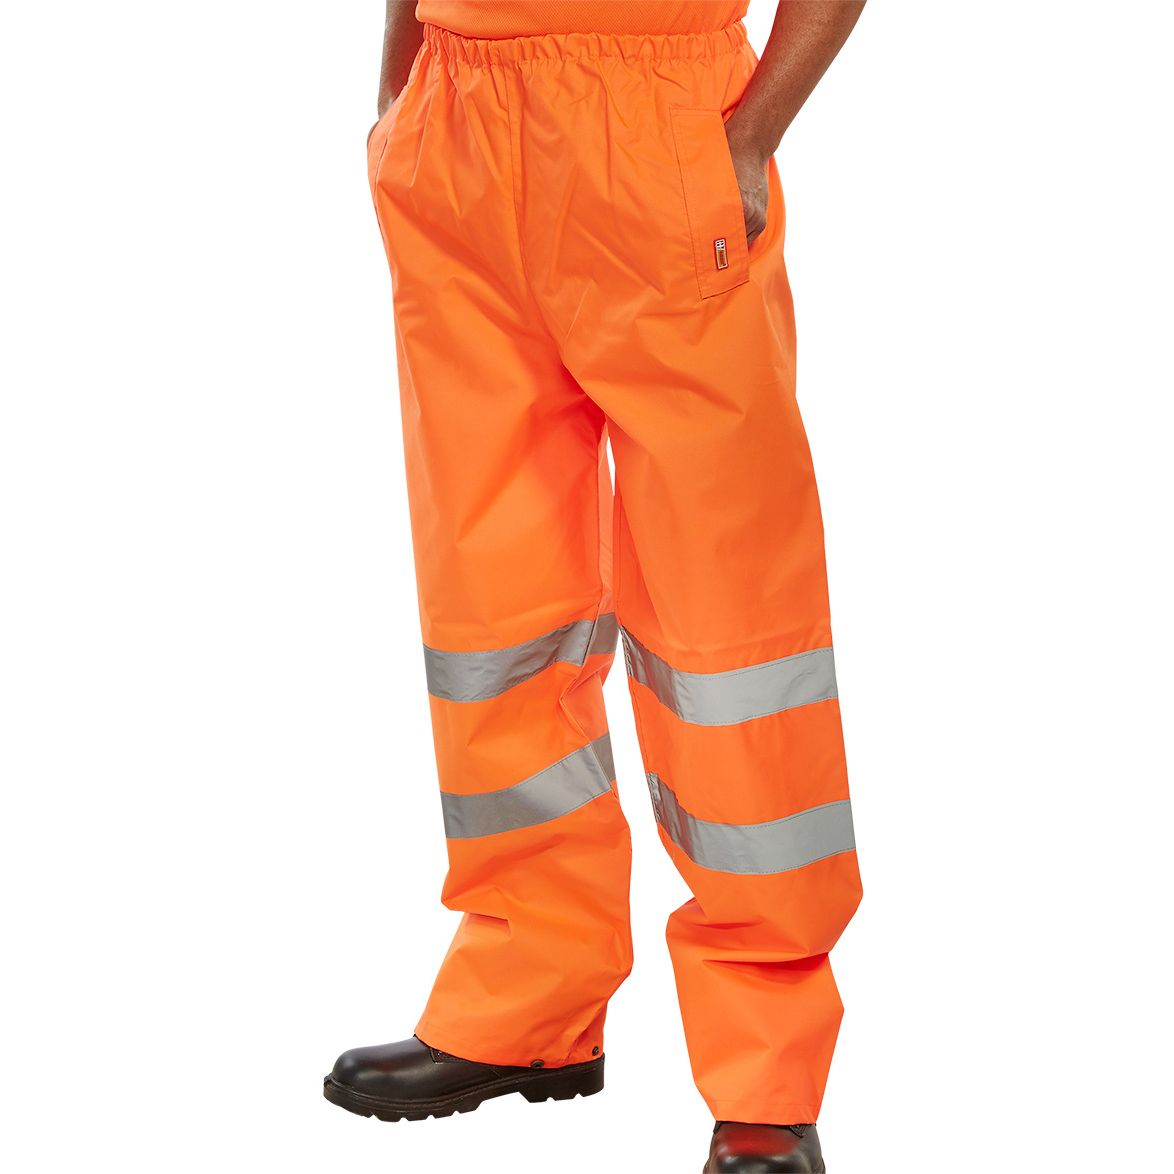 BSeen Traffic Trousers Hi-Vis Reflective Tape Medium Orange Ref TENORM Up to 3 Day Leadtime